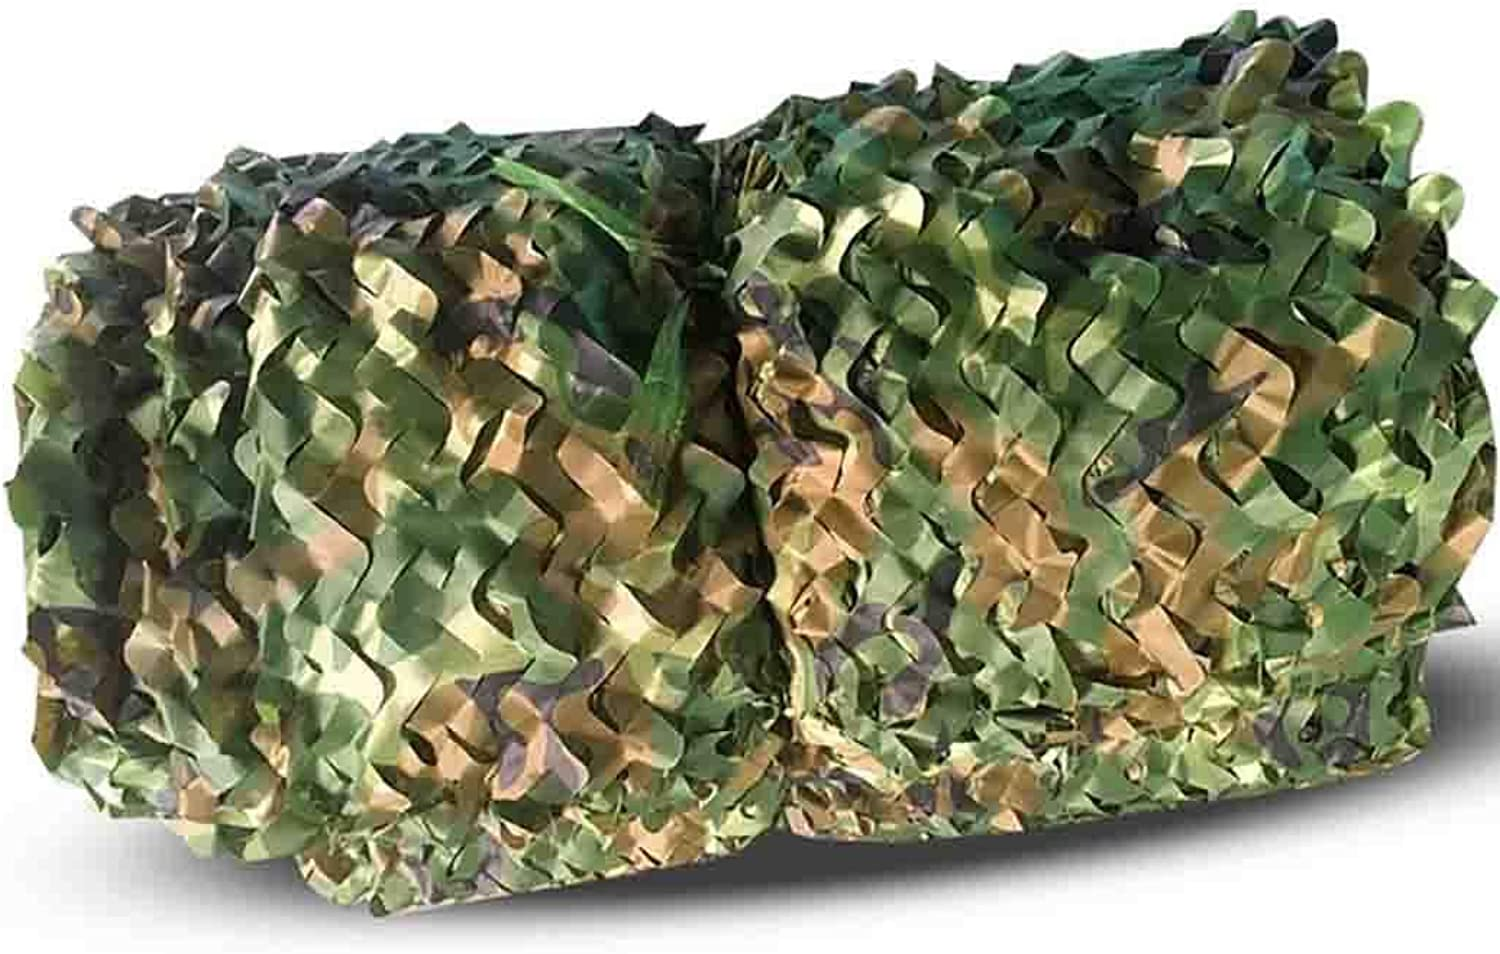 DPPAN Military Camouflage Netting, Sunscreen Nets for Woodland Camping Shooting Hunting Sunshade Hide Swimming Pool,Green_8x10m(26x33ft)